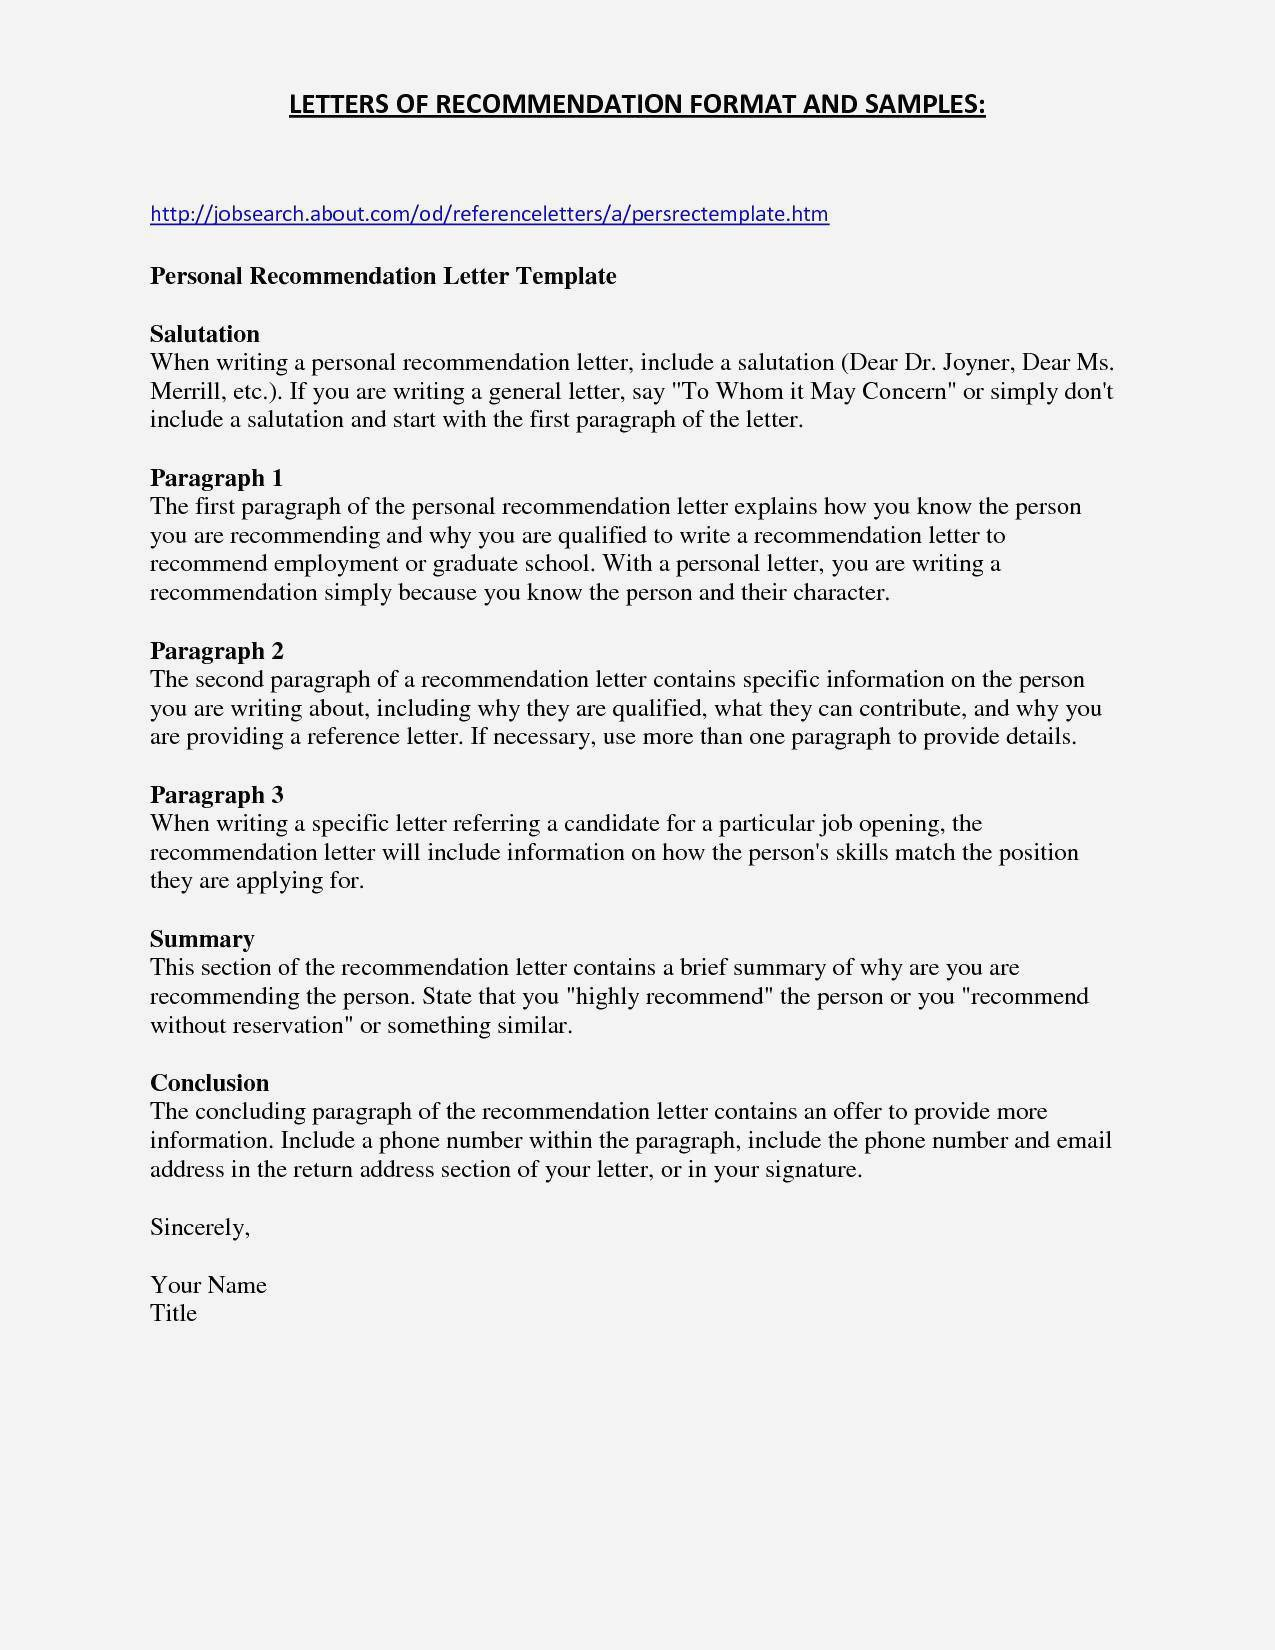 General Labor Resume Template - Resume Templates Open Fice List Free Resume Template Download Voir